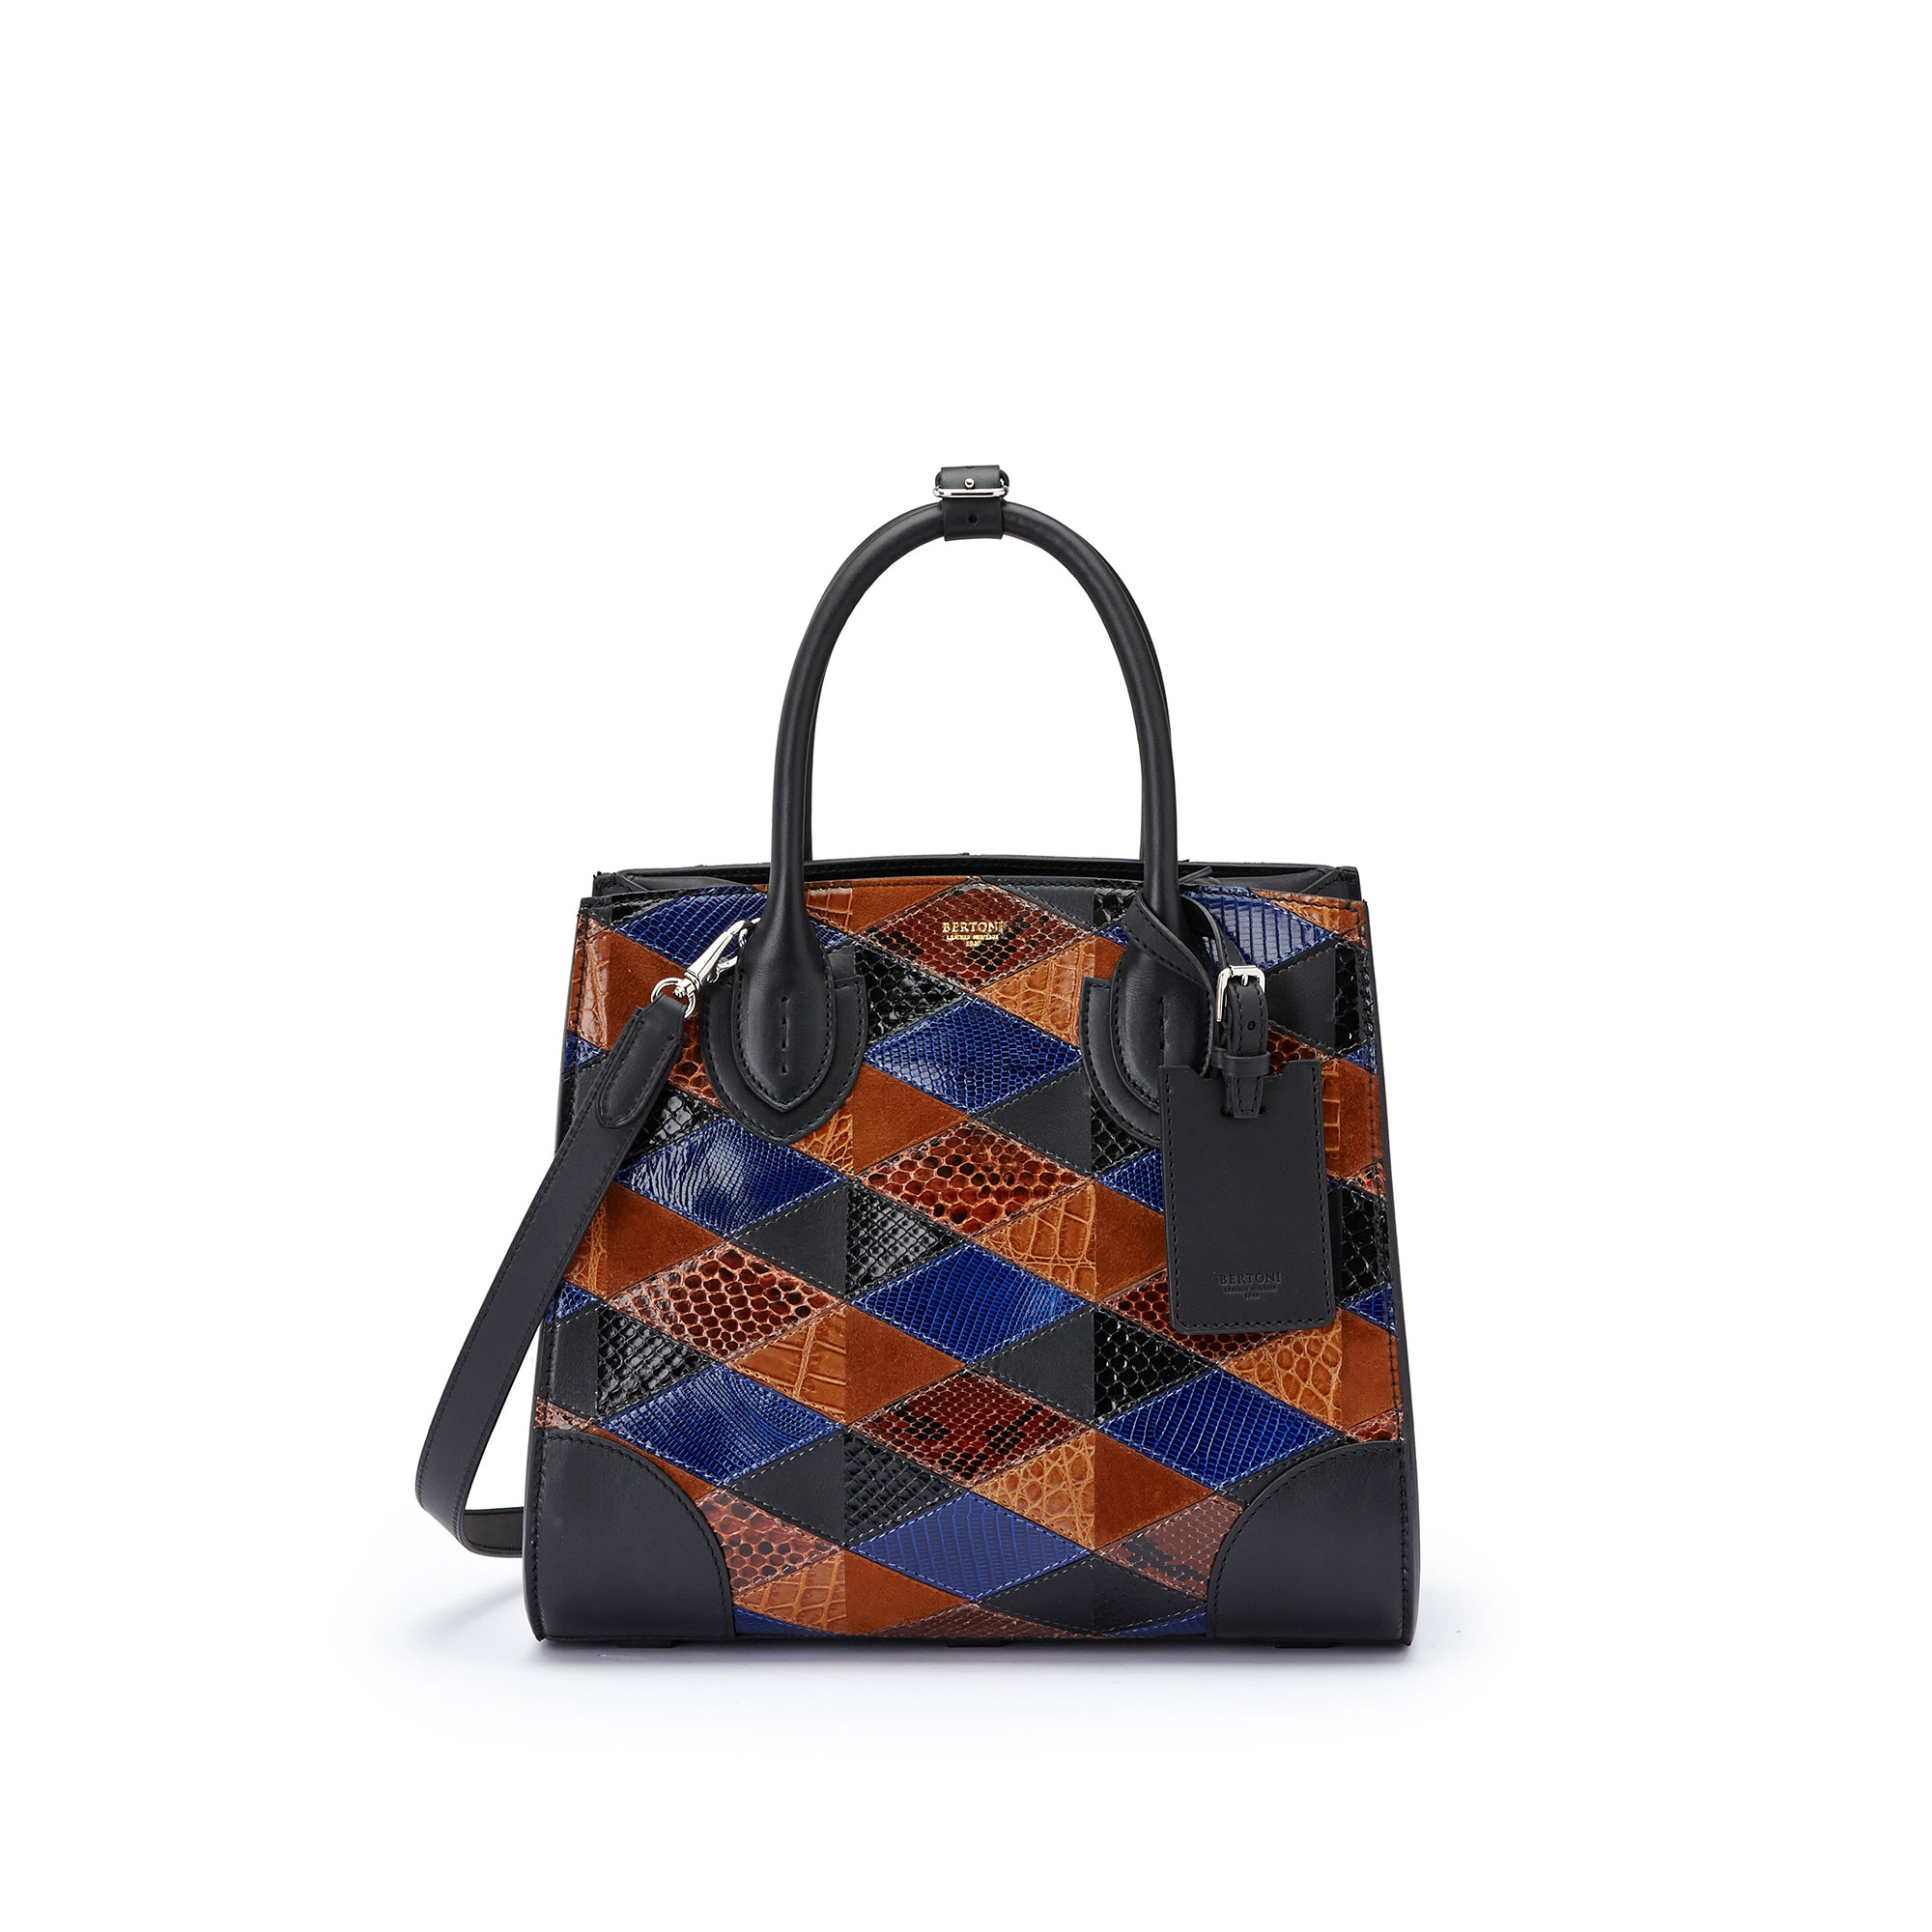 The navy, brown and black french calf, alligator, lizard and python Darcy medium bag by Bertoni 1949 01